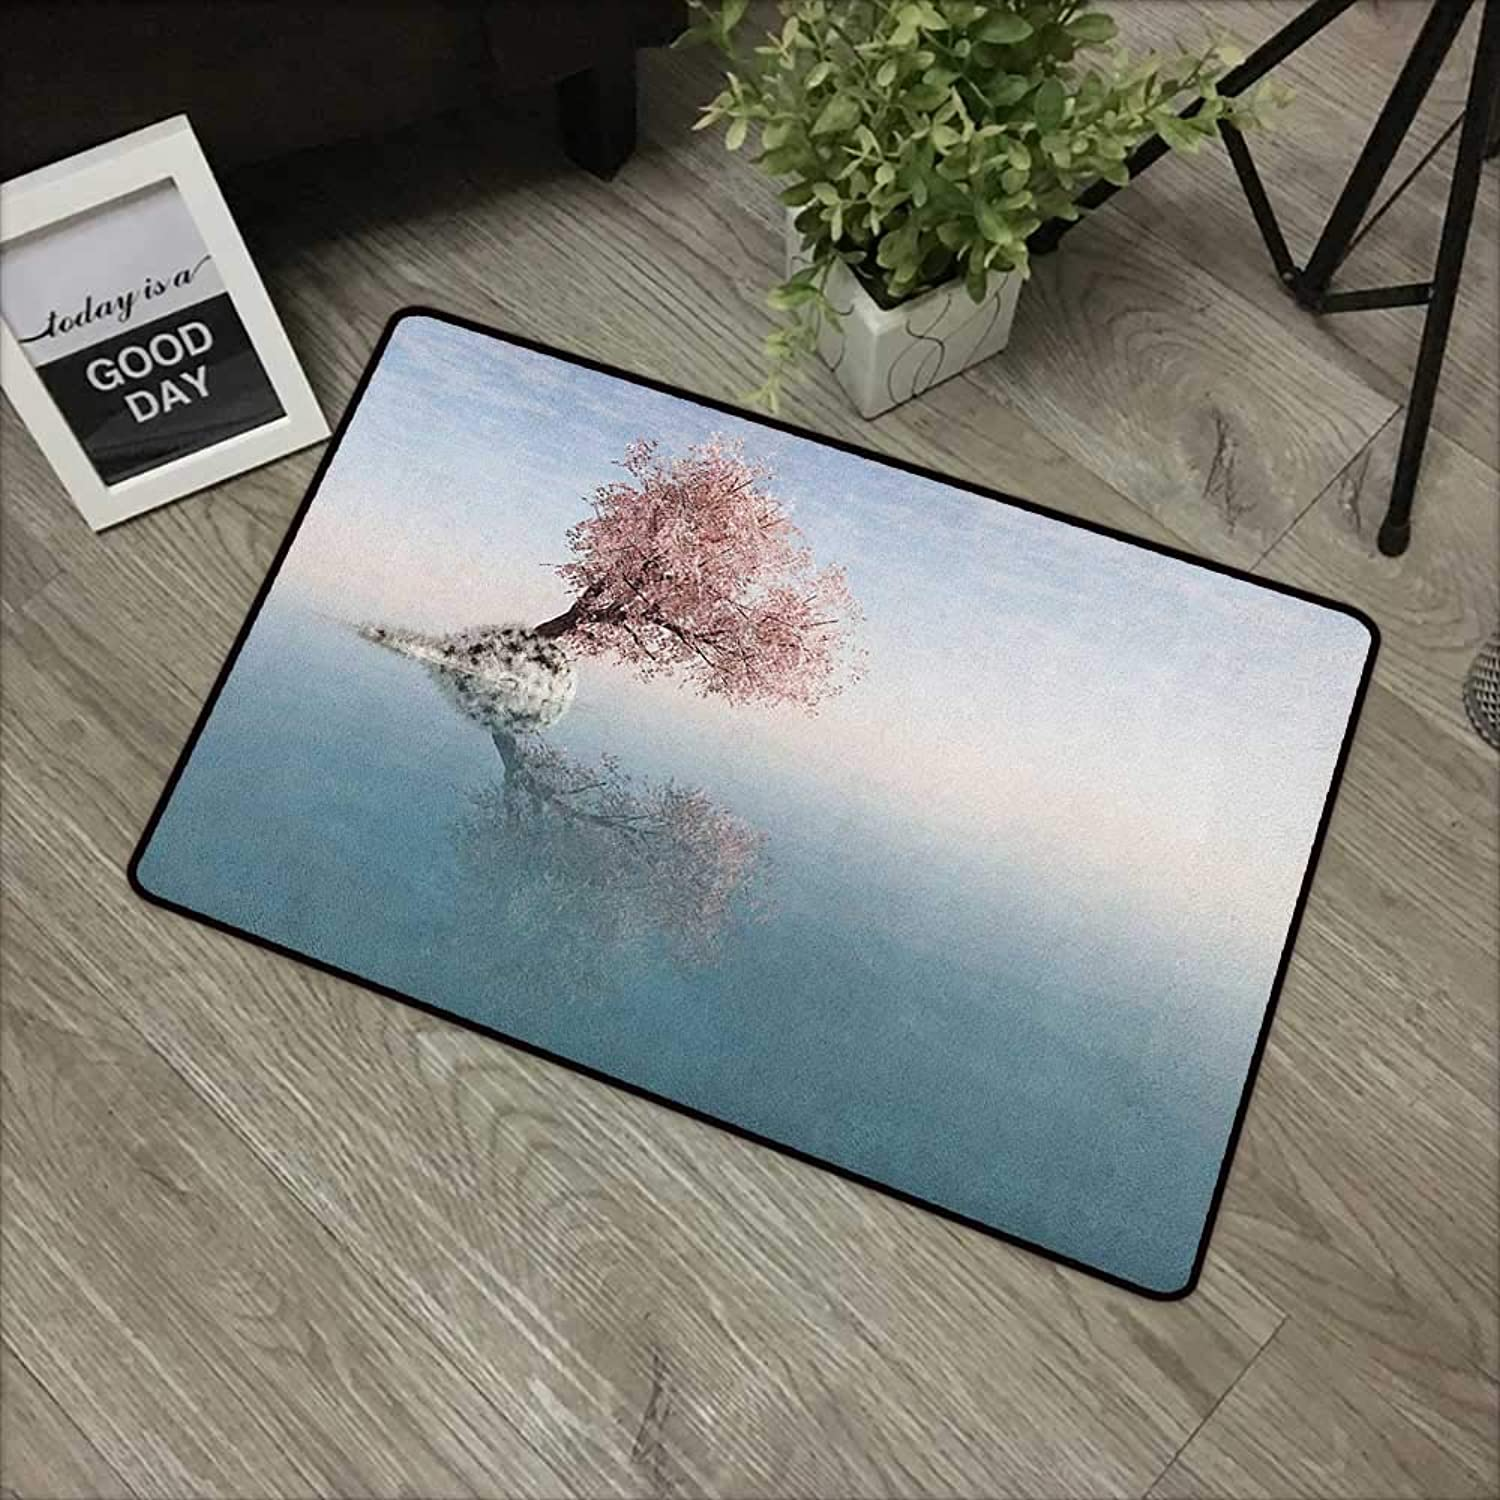 Bedroom Door mat W35 x L59 INCH Tree,A Flower Tree in The Middle of Lake with Reflection in The Water Magical Scenic View, Teal Pink Non-Slip, with Non-Slip Backing,Non-Slip Door Mat Carpet